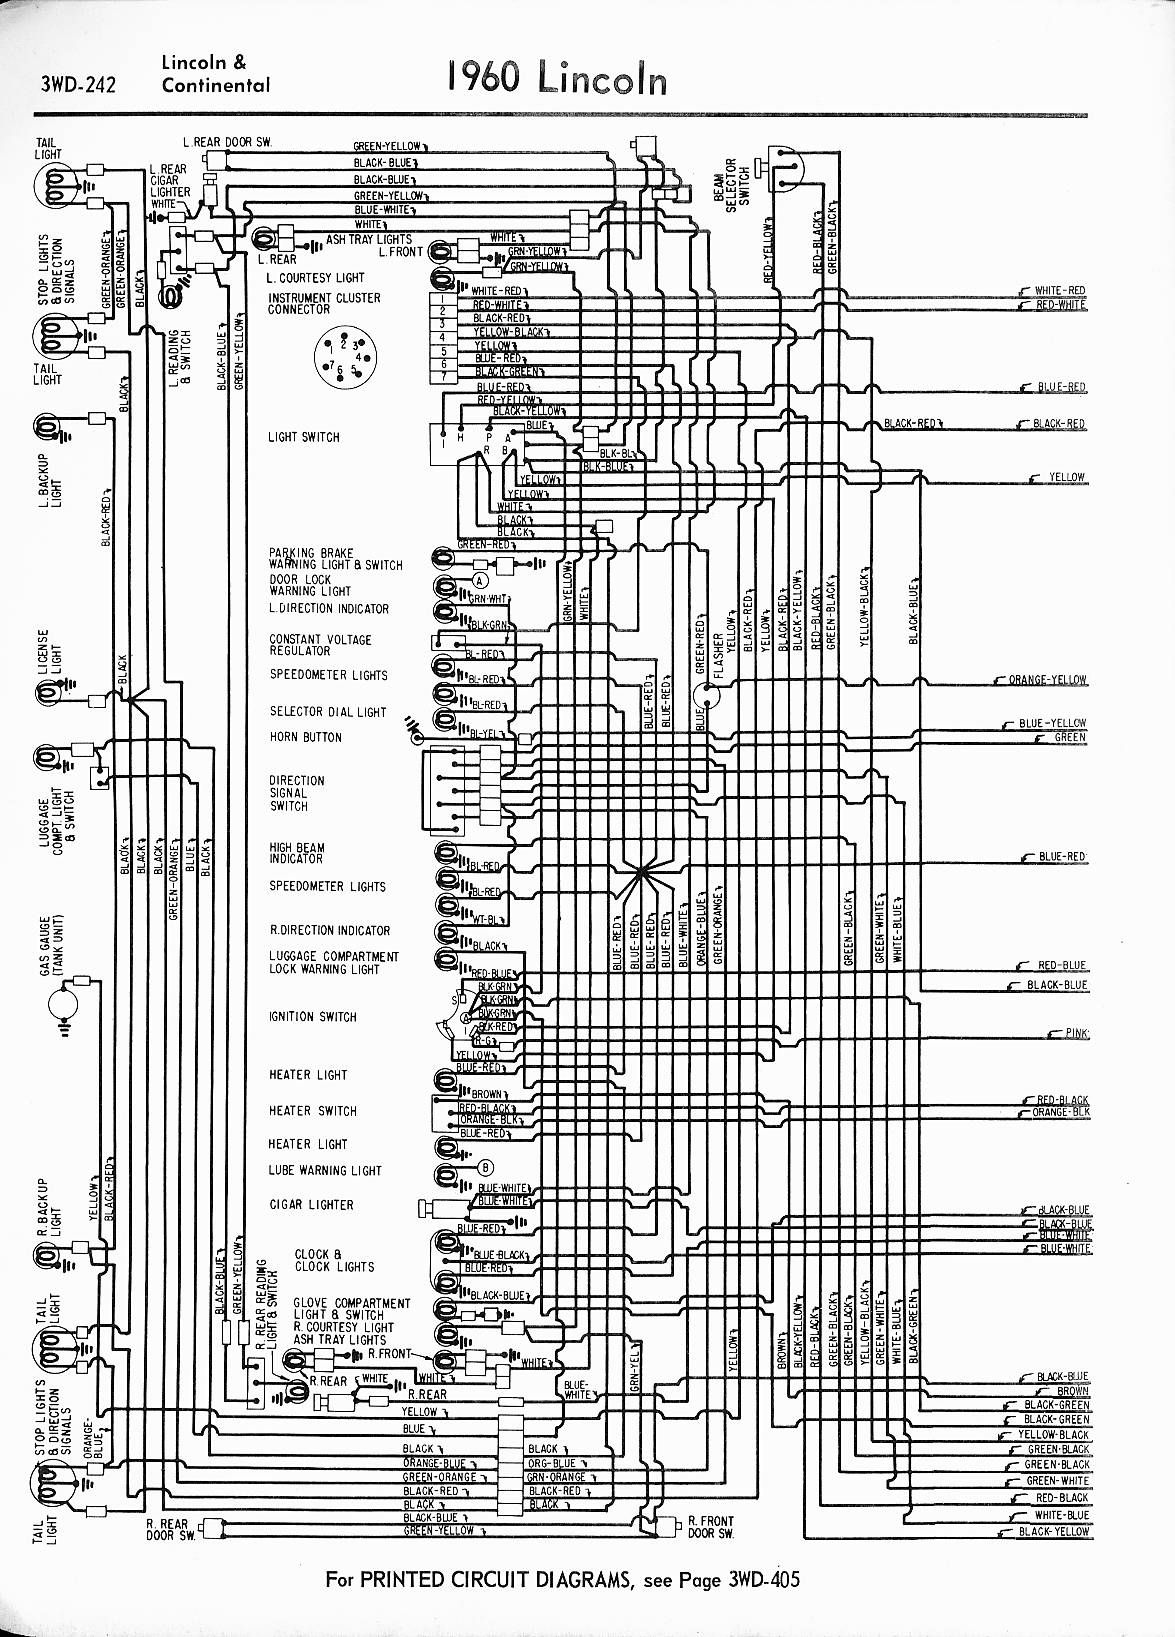 1967 Lincoln Fuse Box Wiring Diagram Libraries 67 F100 1965 Continental Schematic Diagrams1965 Data 1966